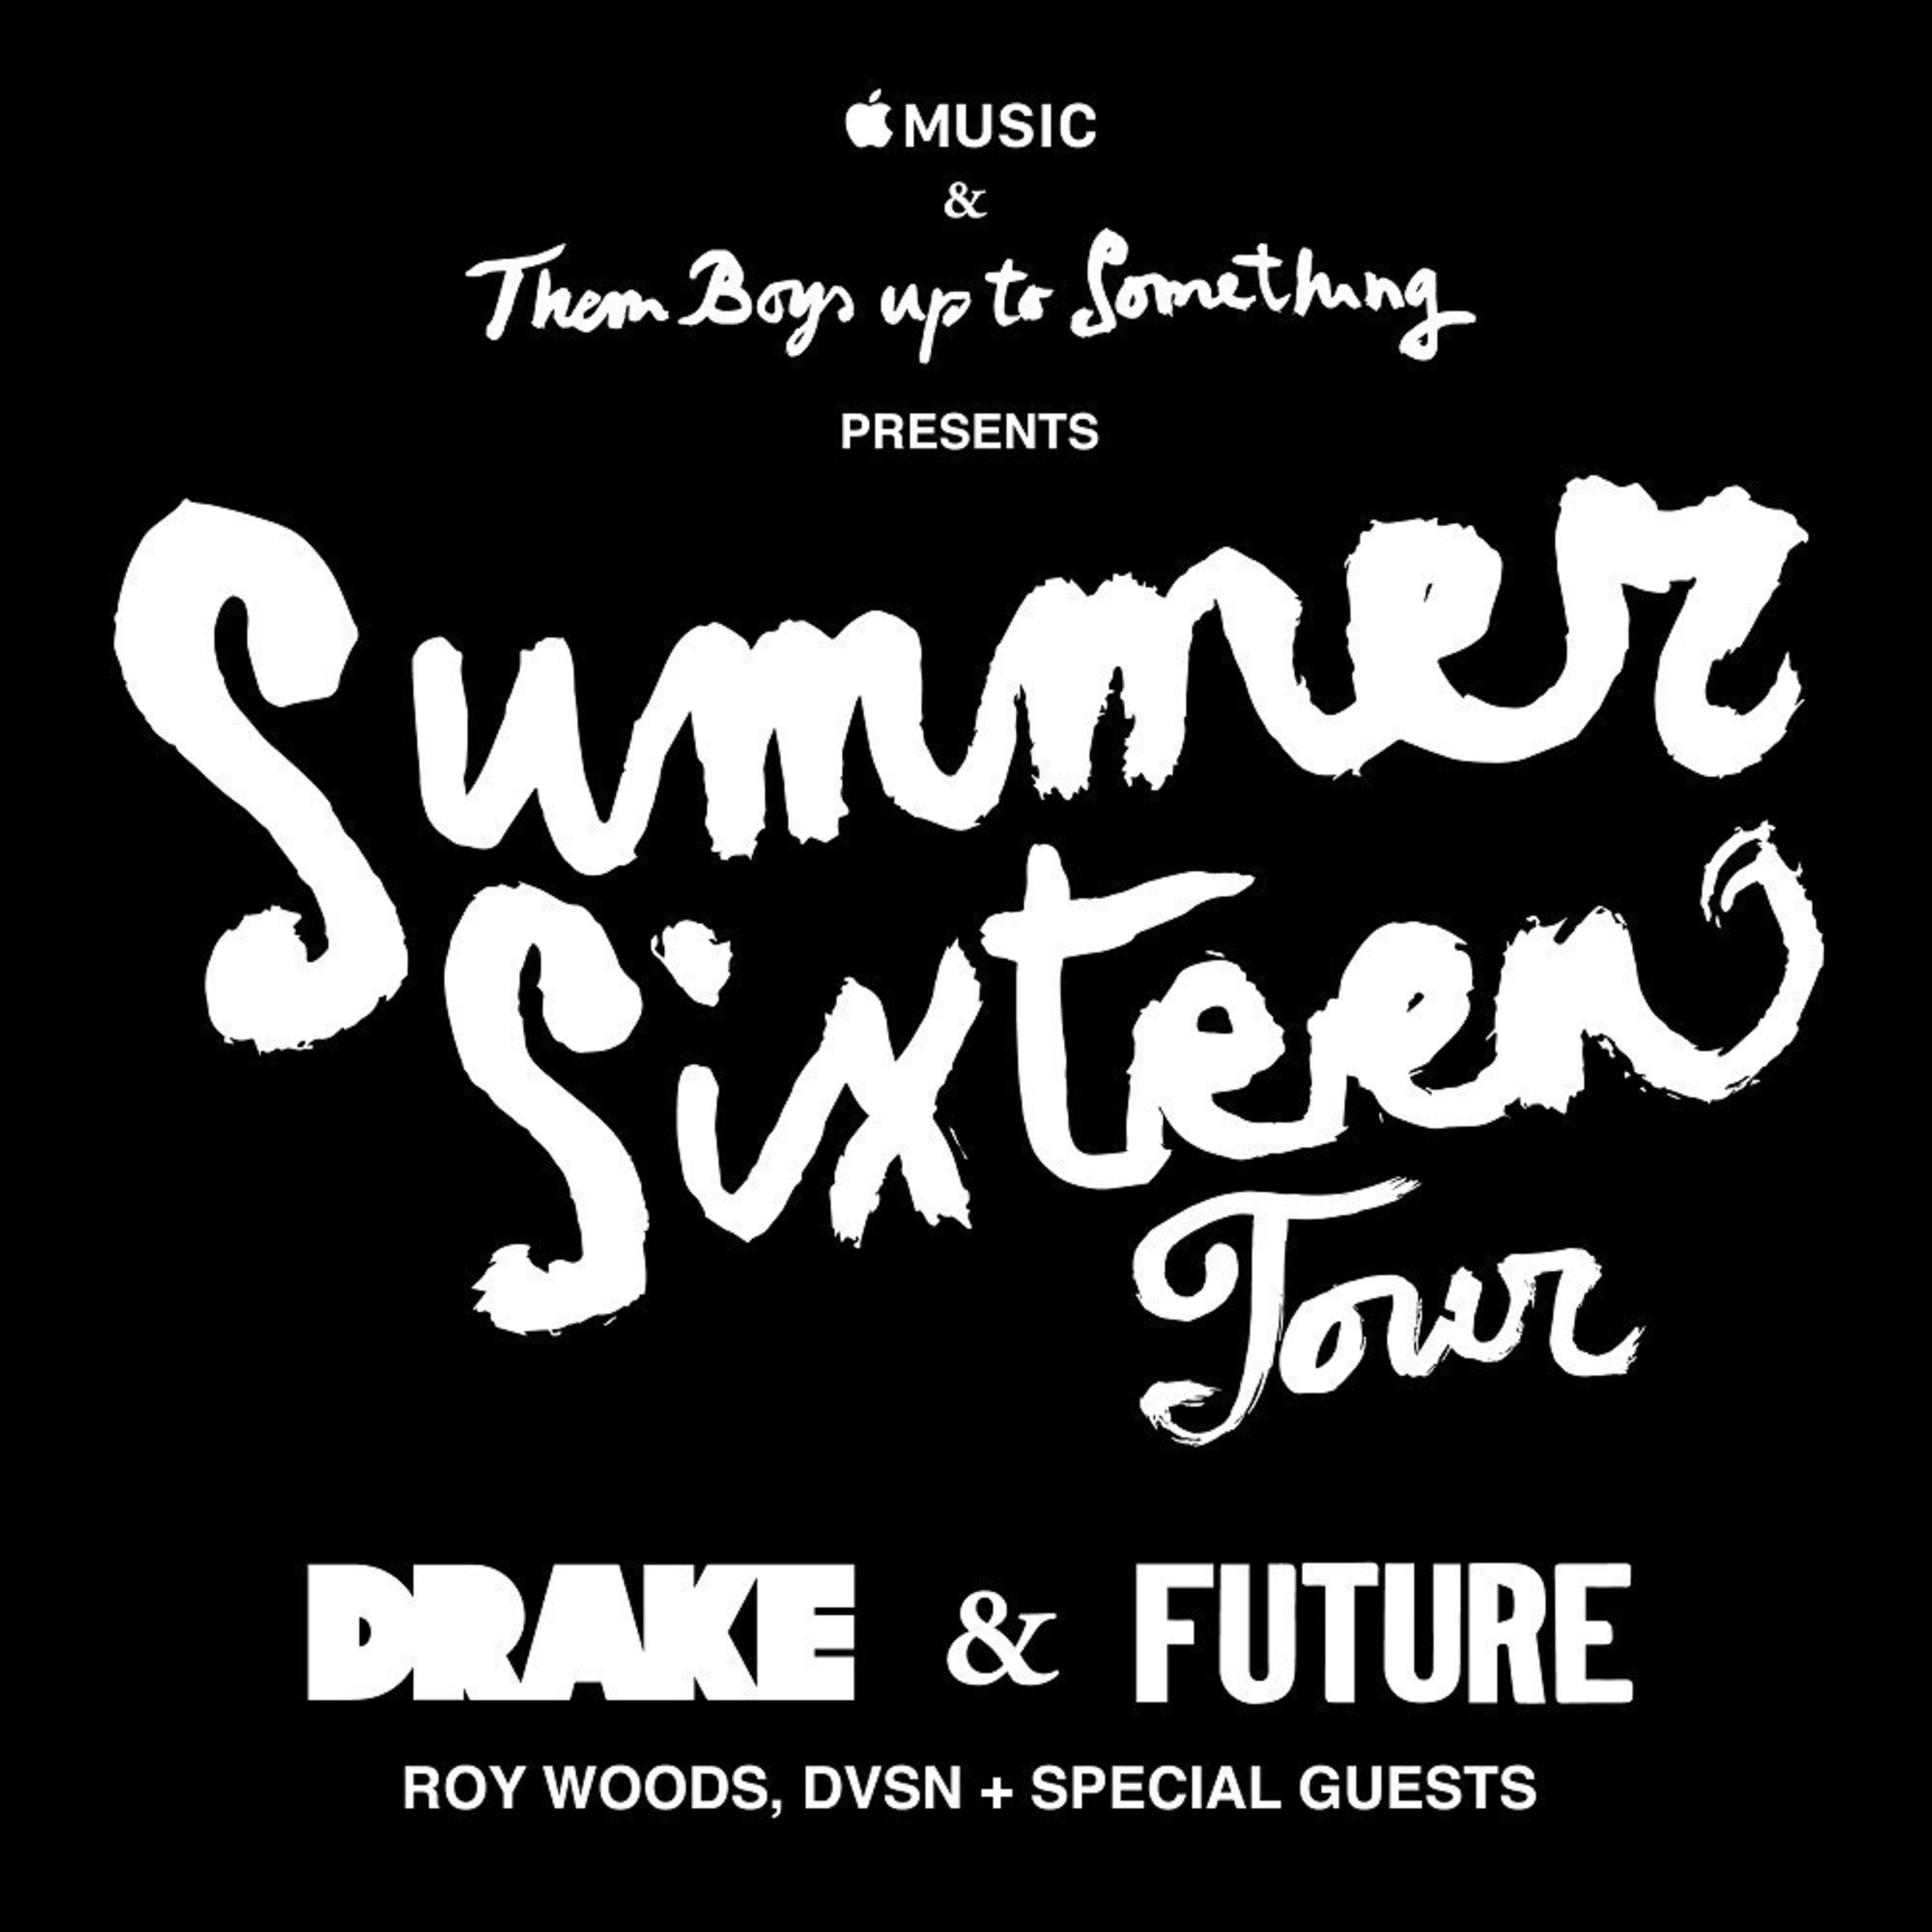 DRAKE TO LAUNCH SUMMER SIXTEEN TOUR WITH FUTURE AND SPECIAL GUESTS